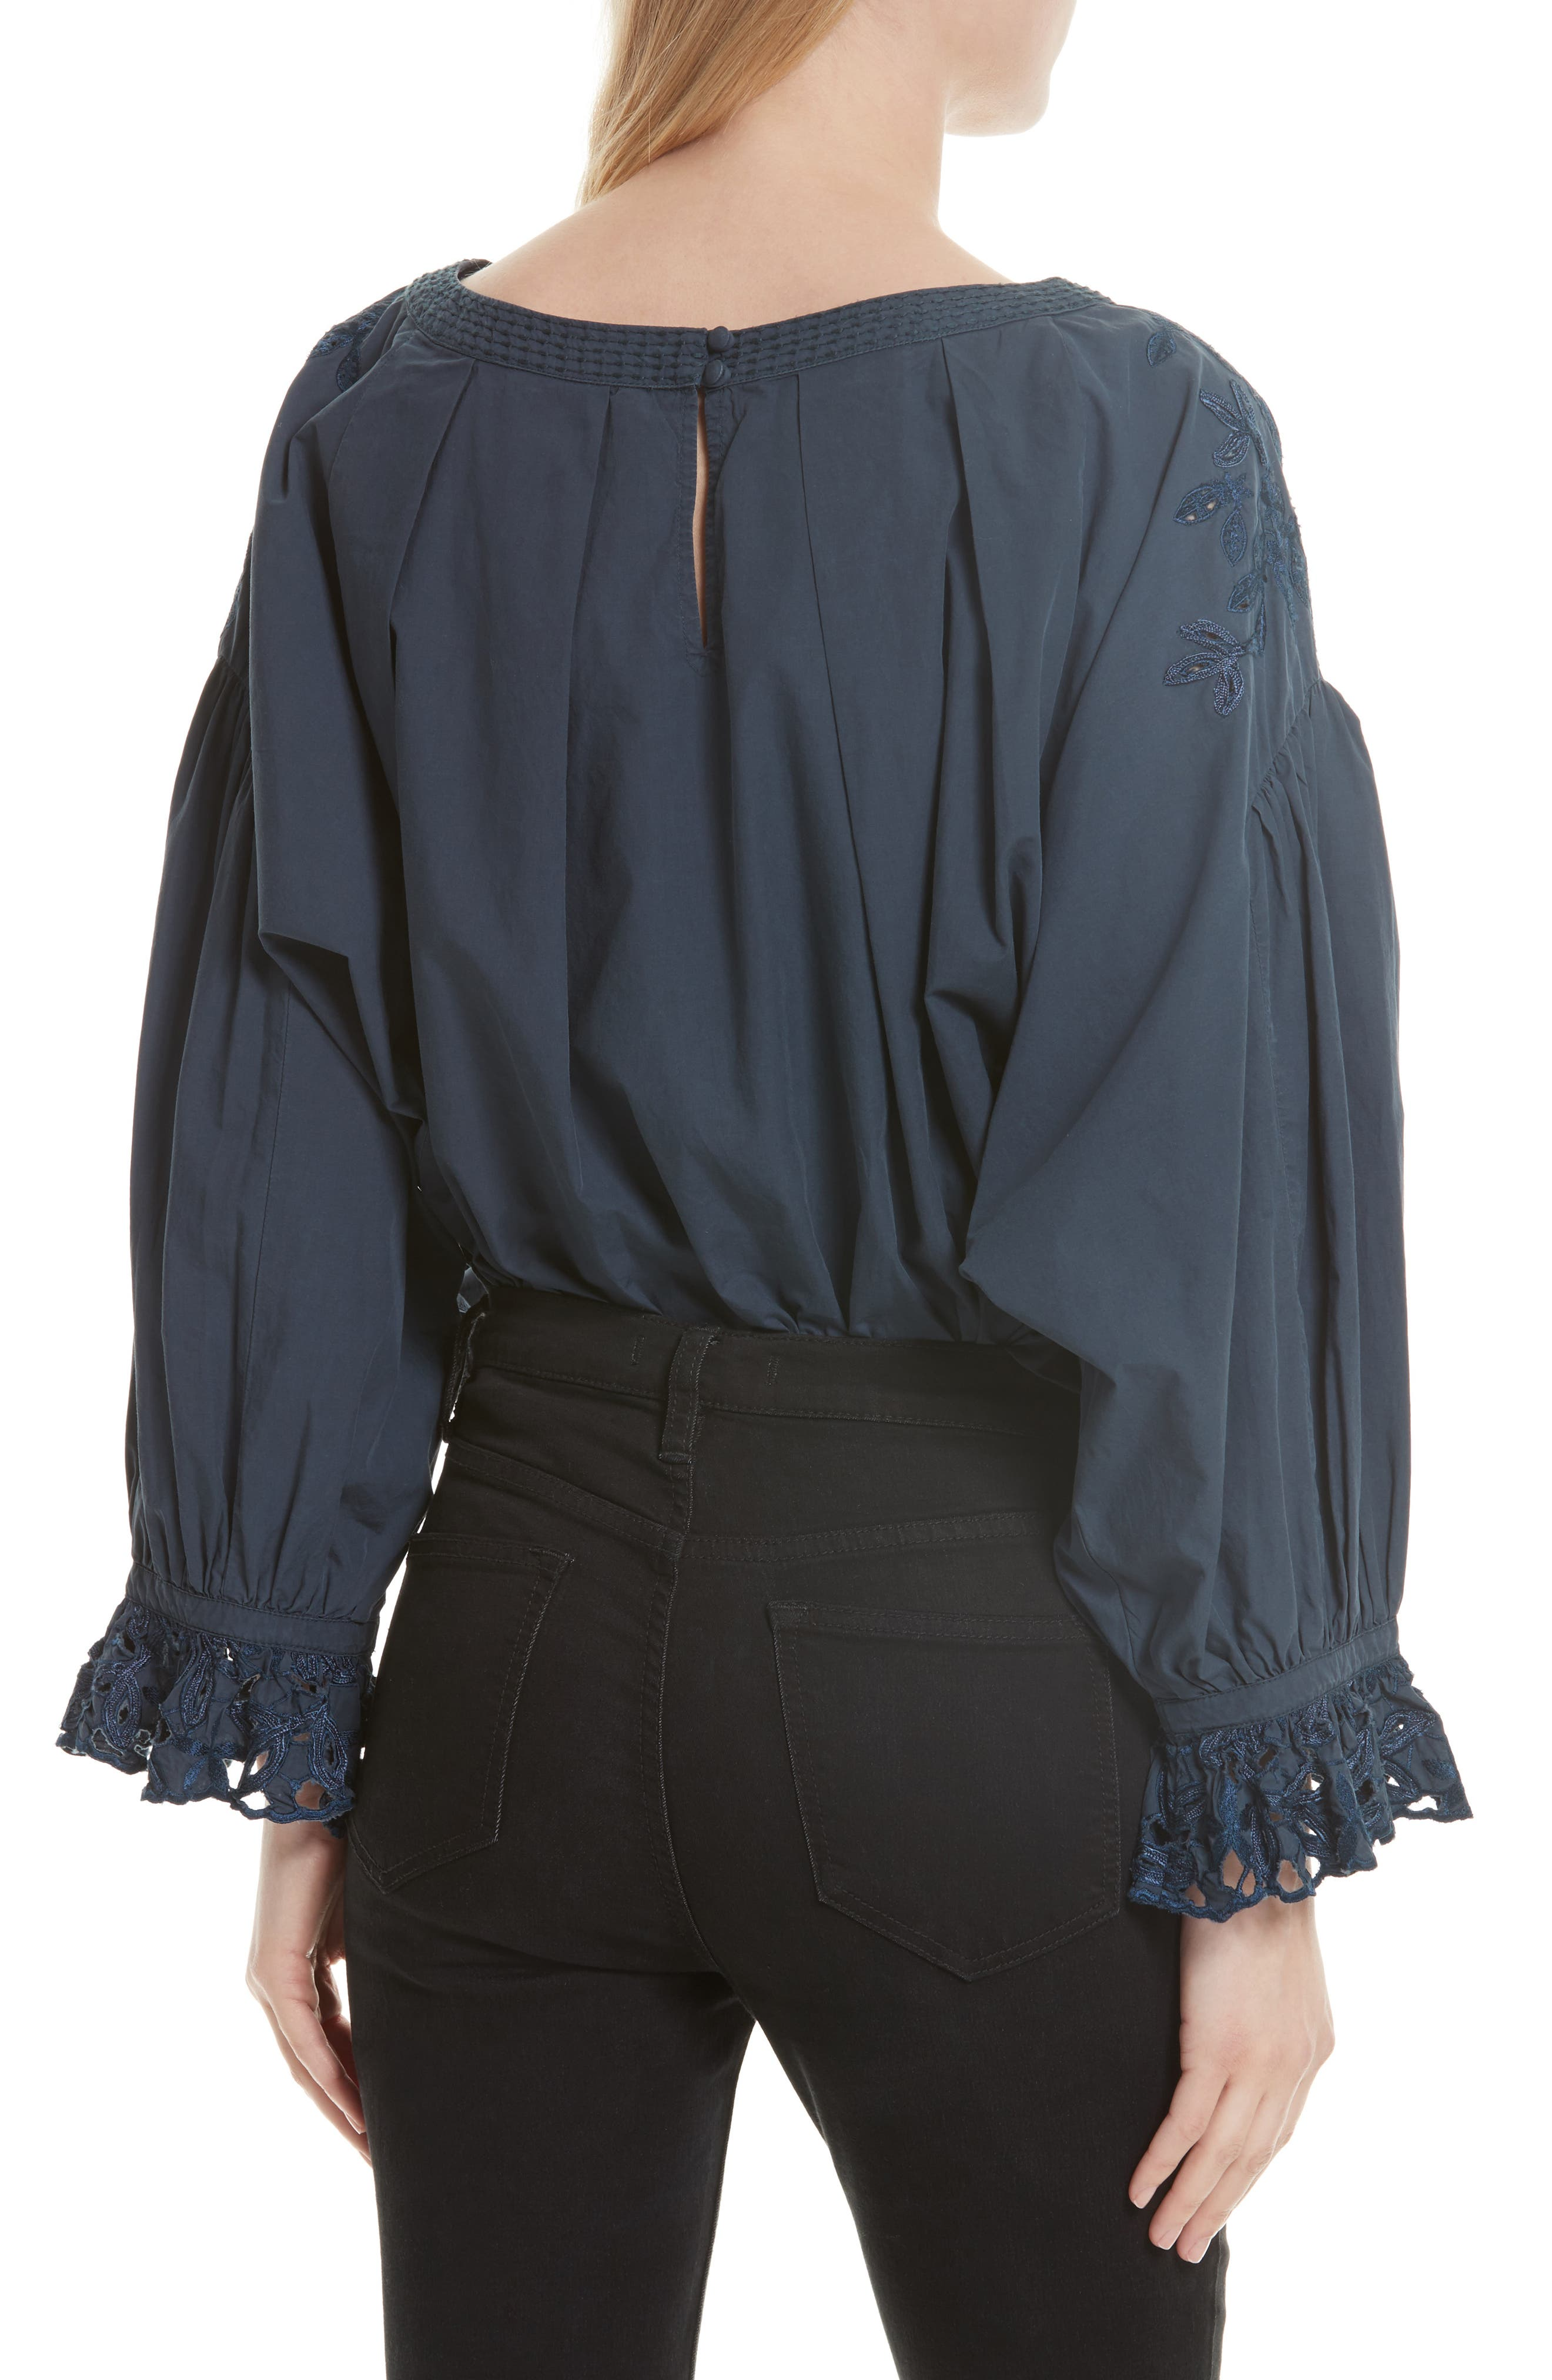 Wishing Well Blouse,                             Alternate thumbnail 2, color,                             020